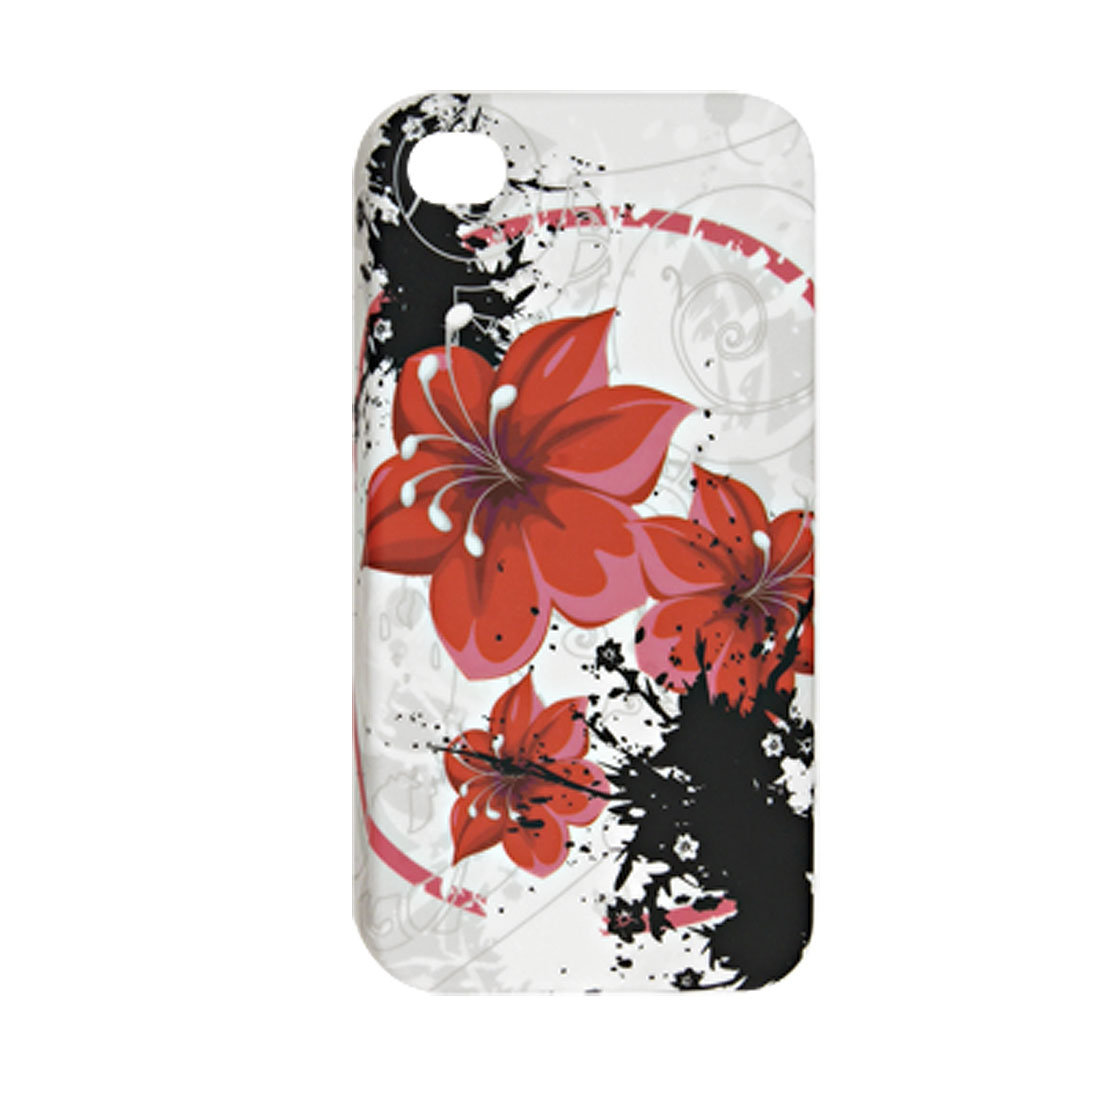 Red Flower Pattern Rubberized Plastic Back Cover for iPhone 4 4G